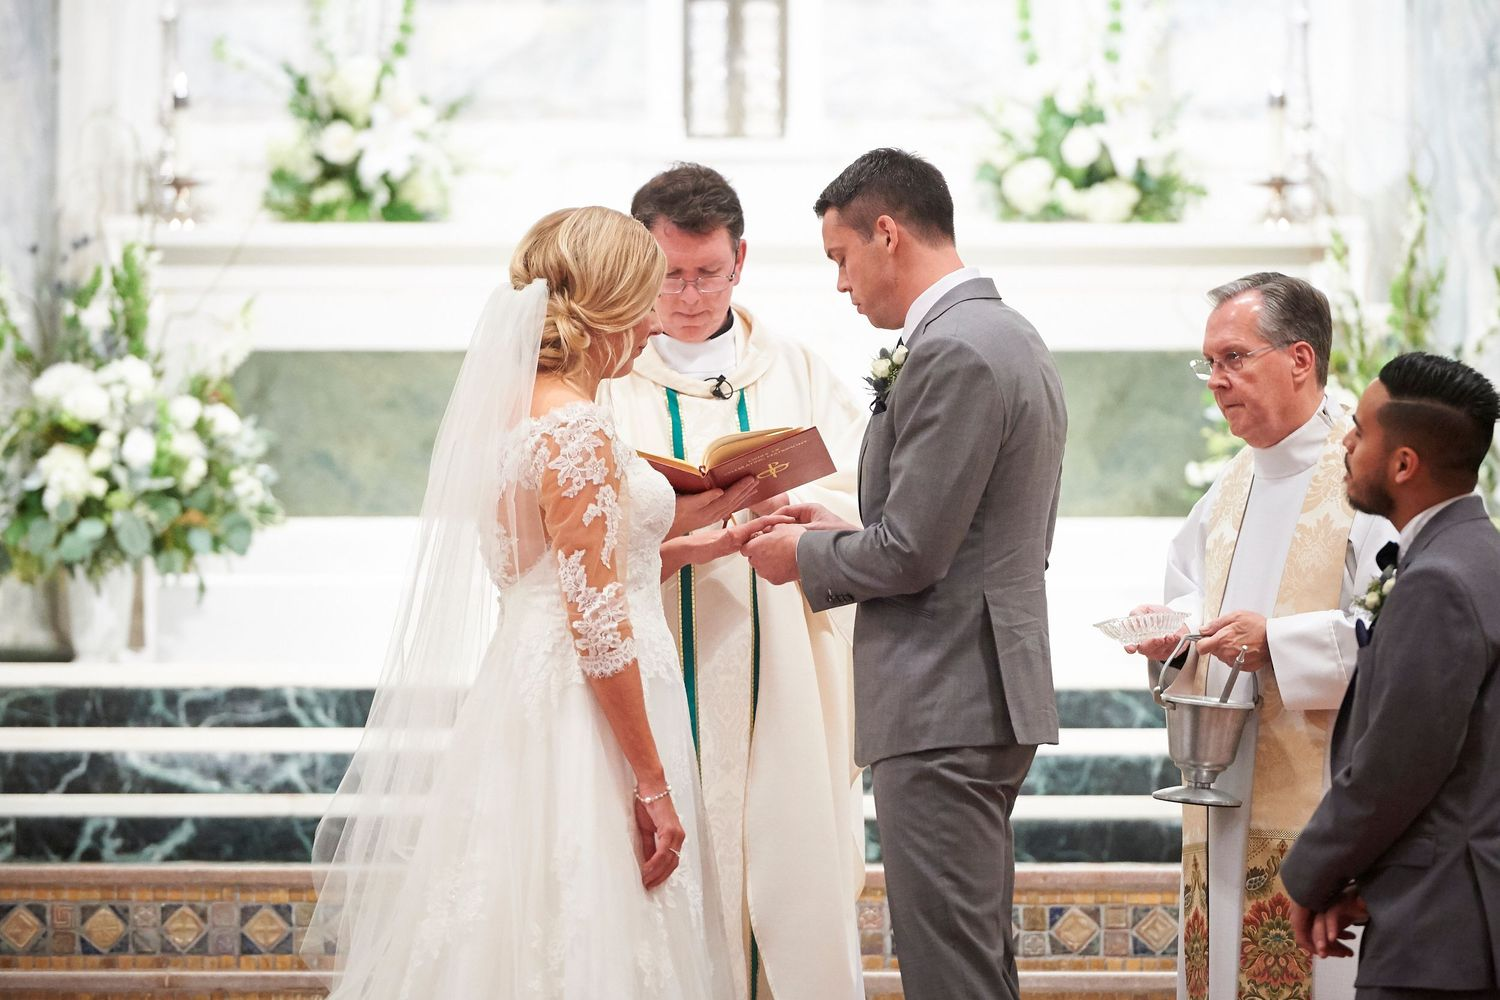 groom placing ring on bride's hand during ceremony at St. Patrick's Church